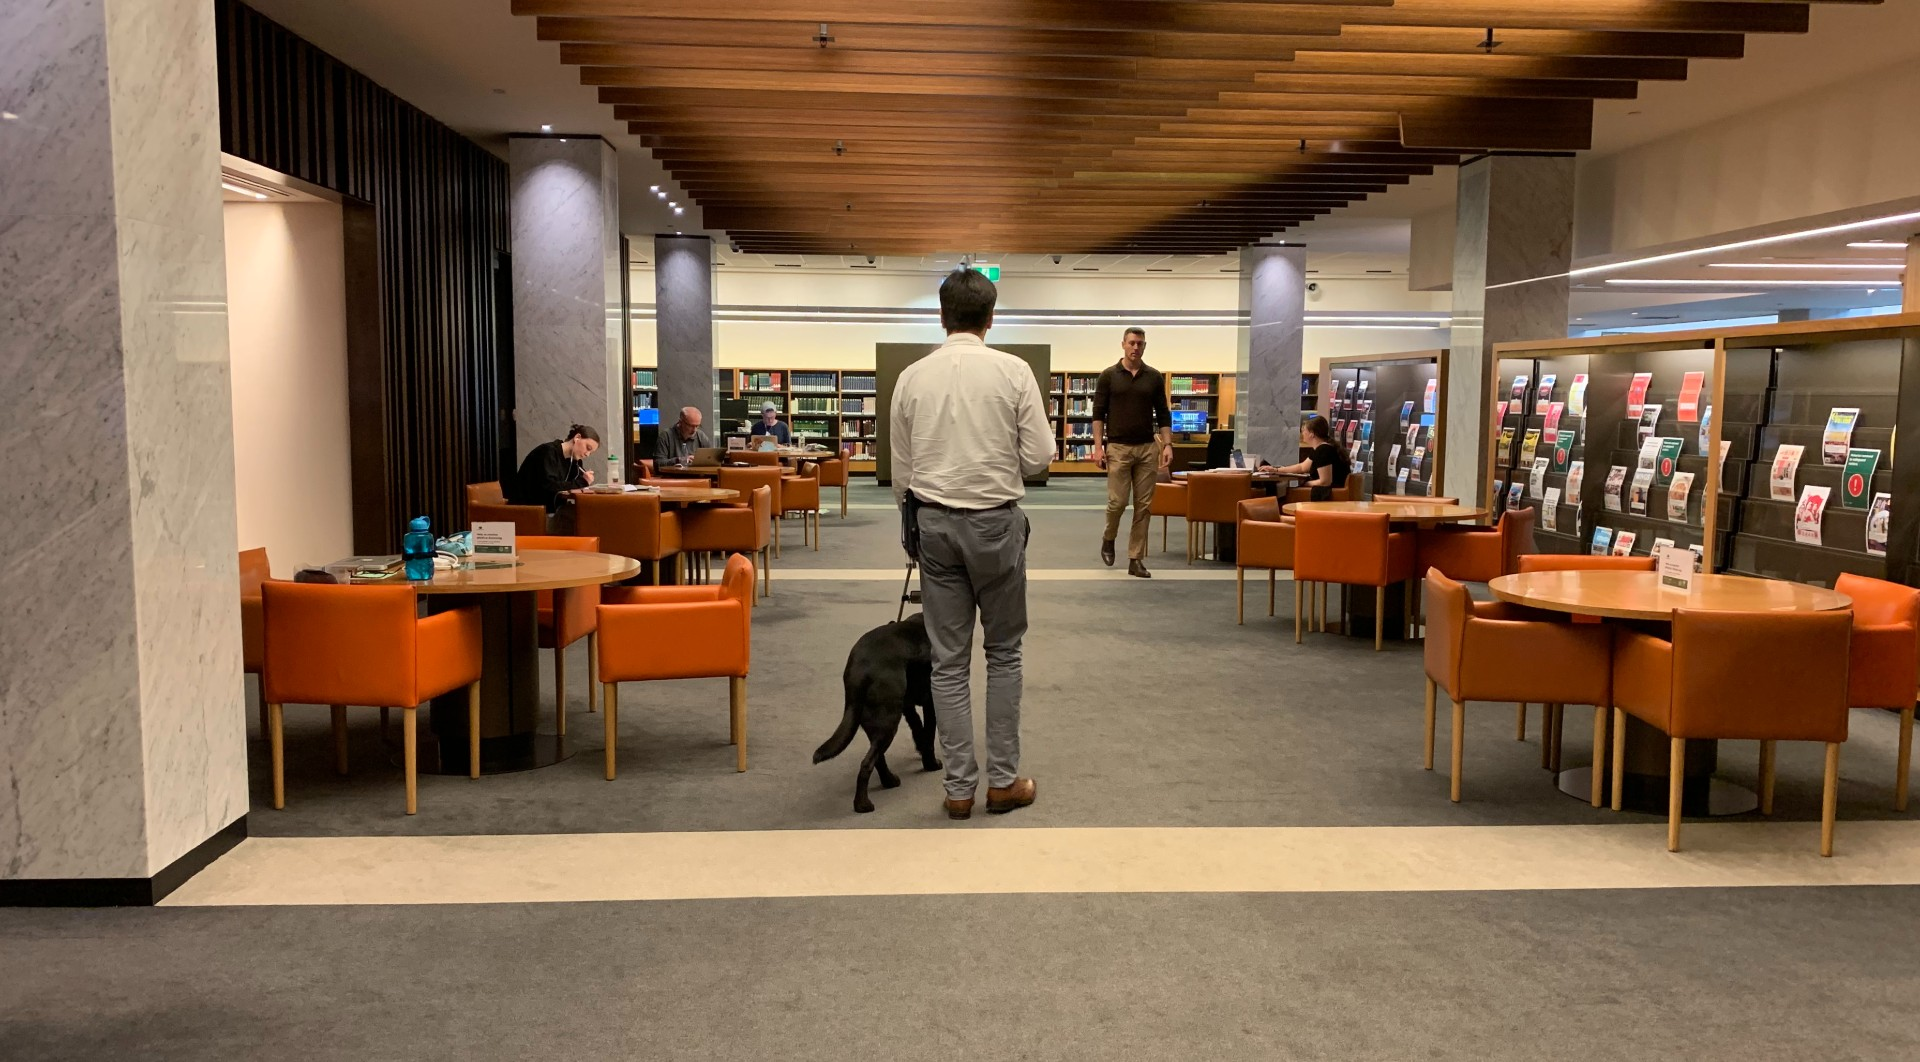 Photograph of Scott Grimley with Dudley, a black dog, walking through the Library's main reading room